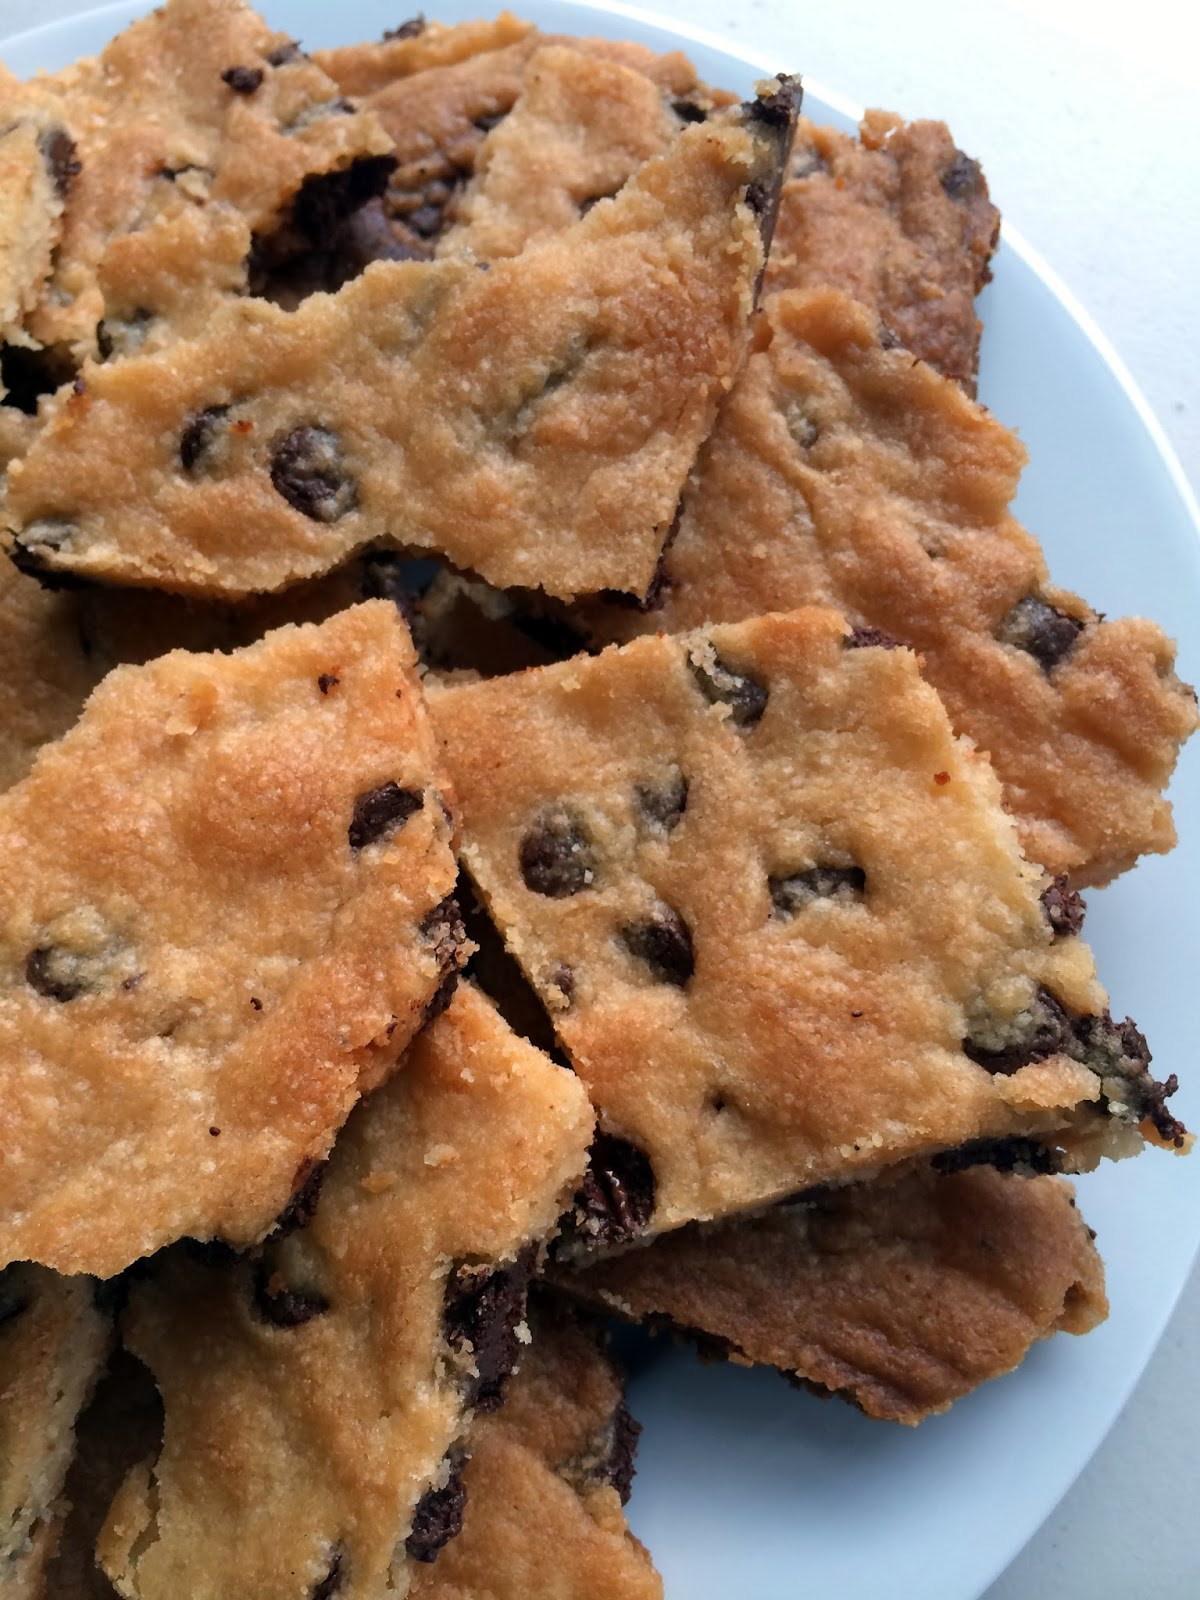 Sweet and Savory Shenanigans: Chocolate Chip Cookie Brittle